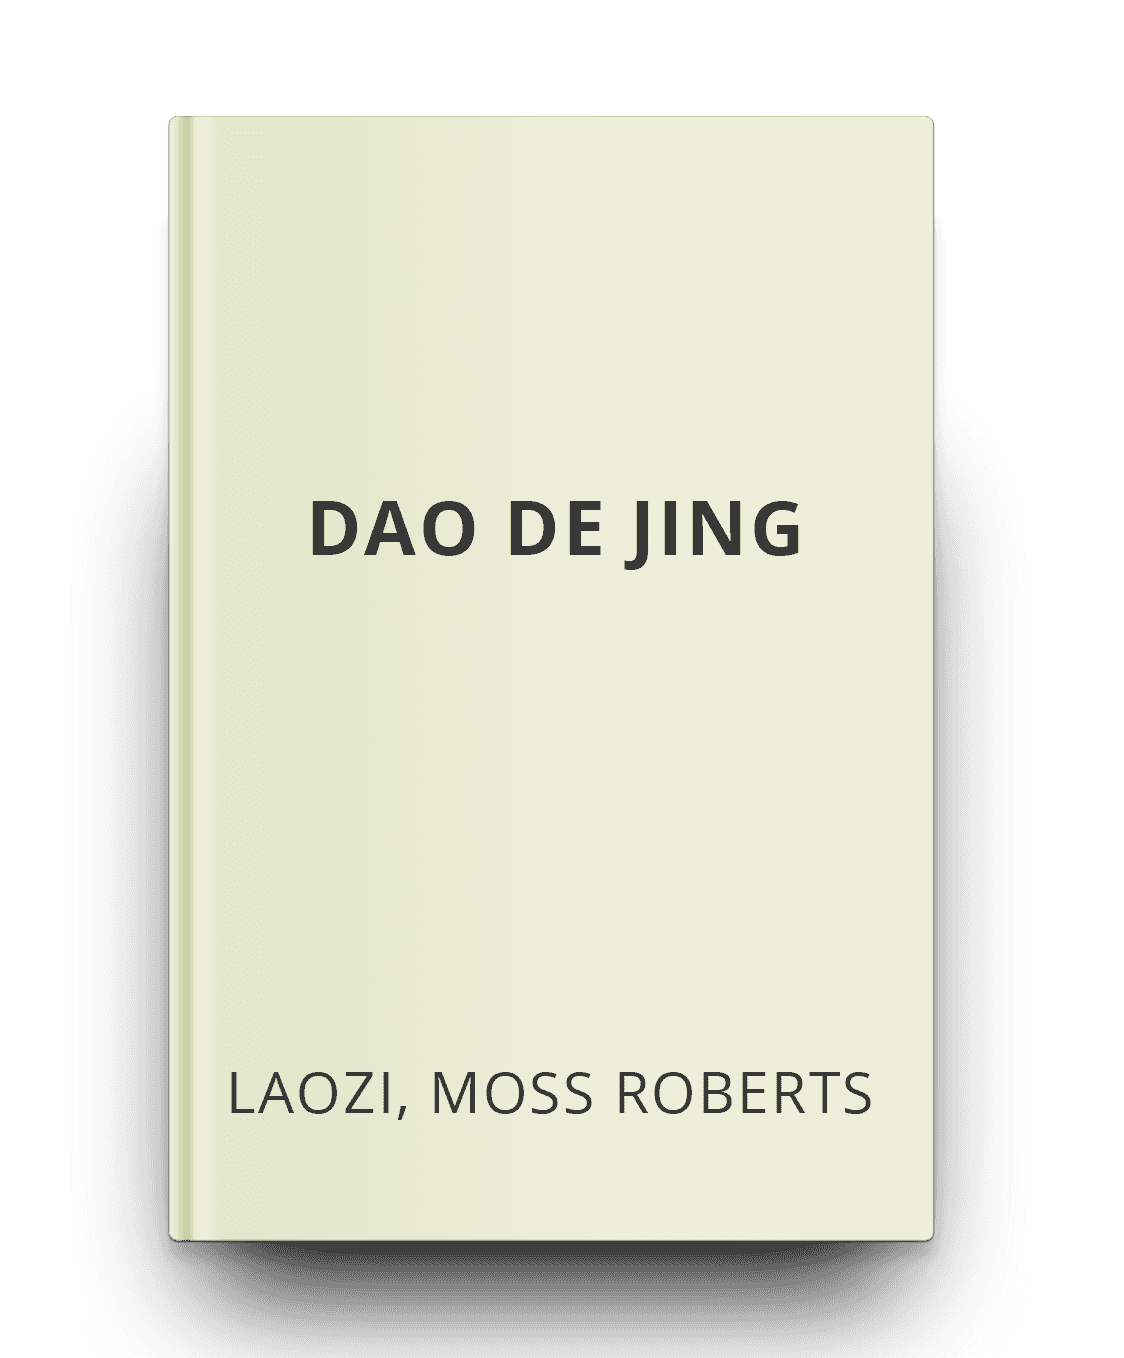 dao de jing the book of the way by laozi moss roberts jack dorsey choice